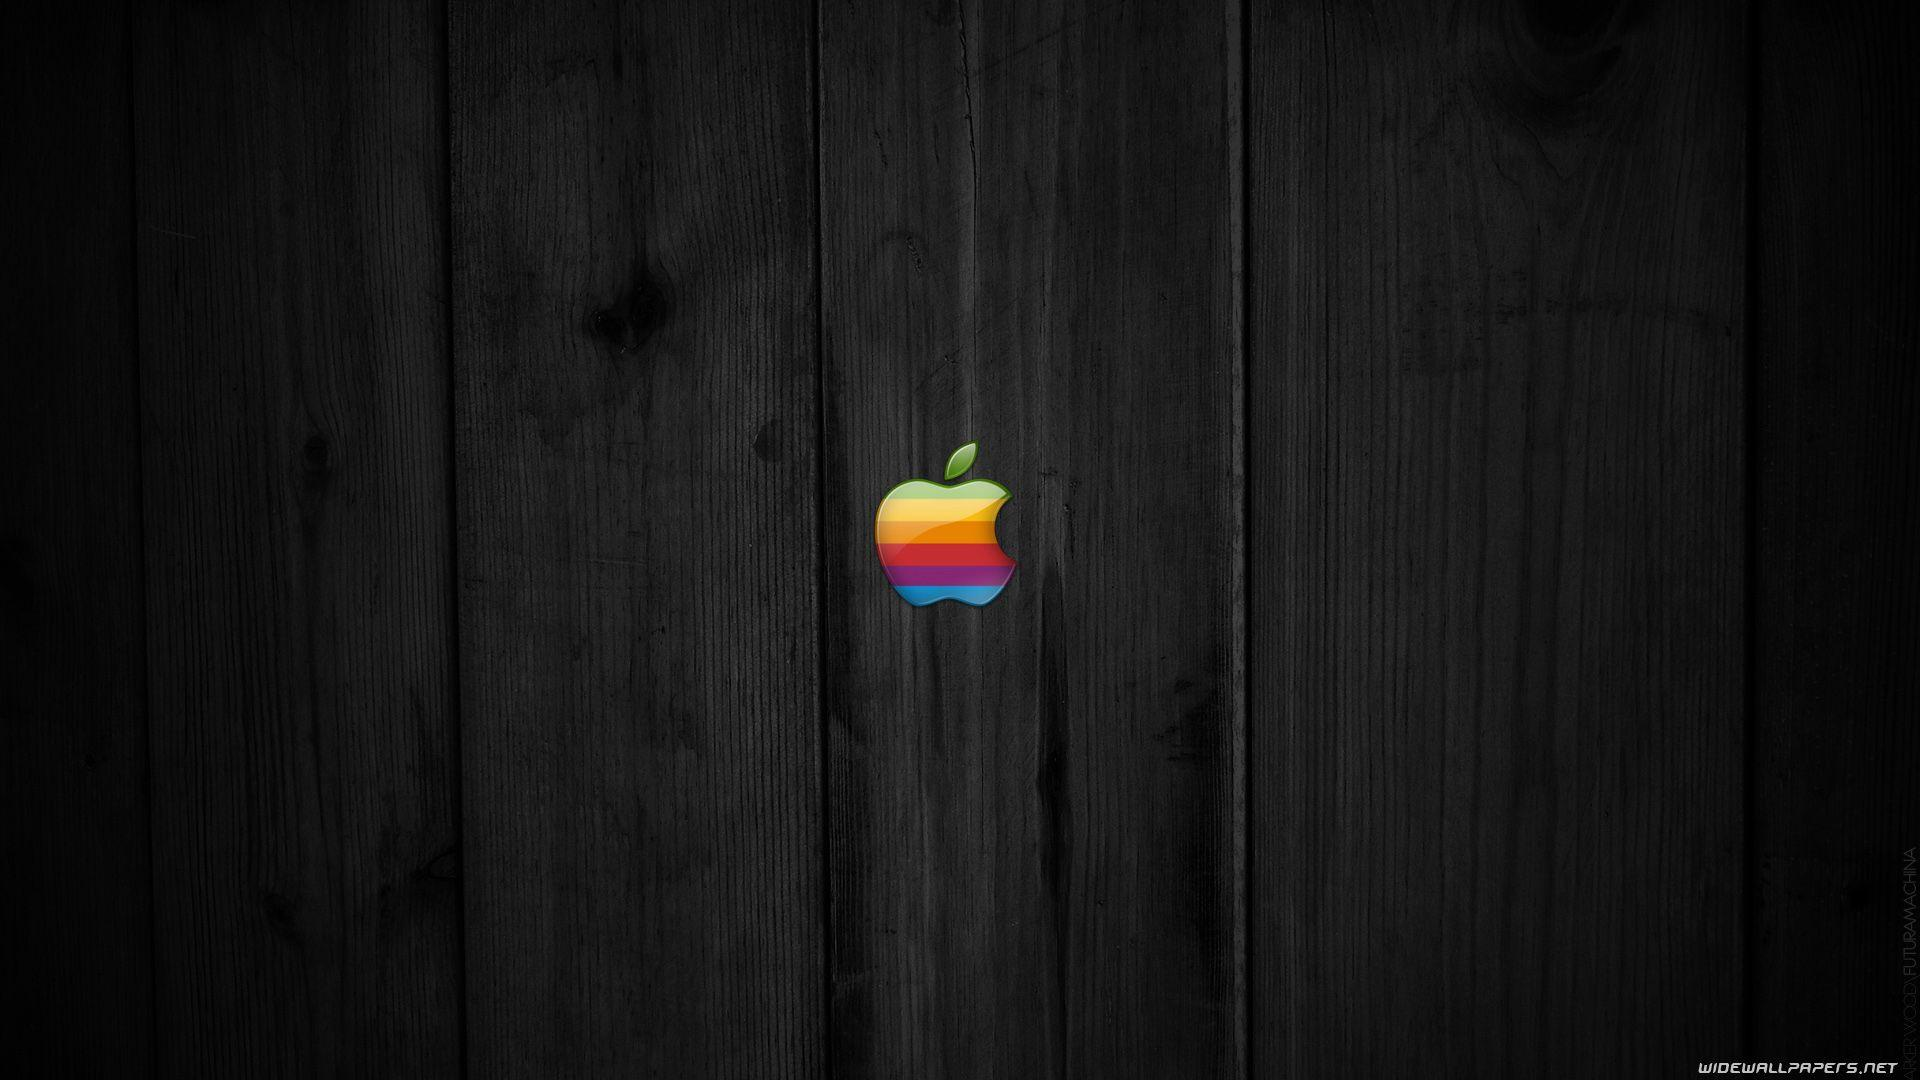 Wood Apple Wallpapers 1080p, Cool Apple Image